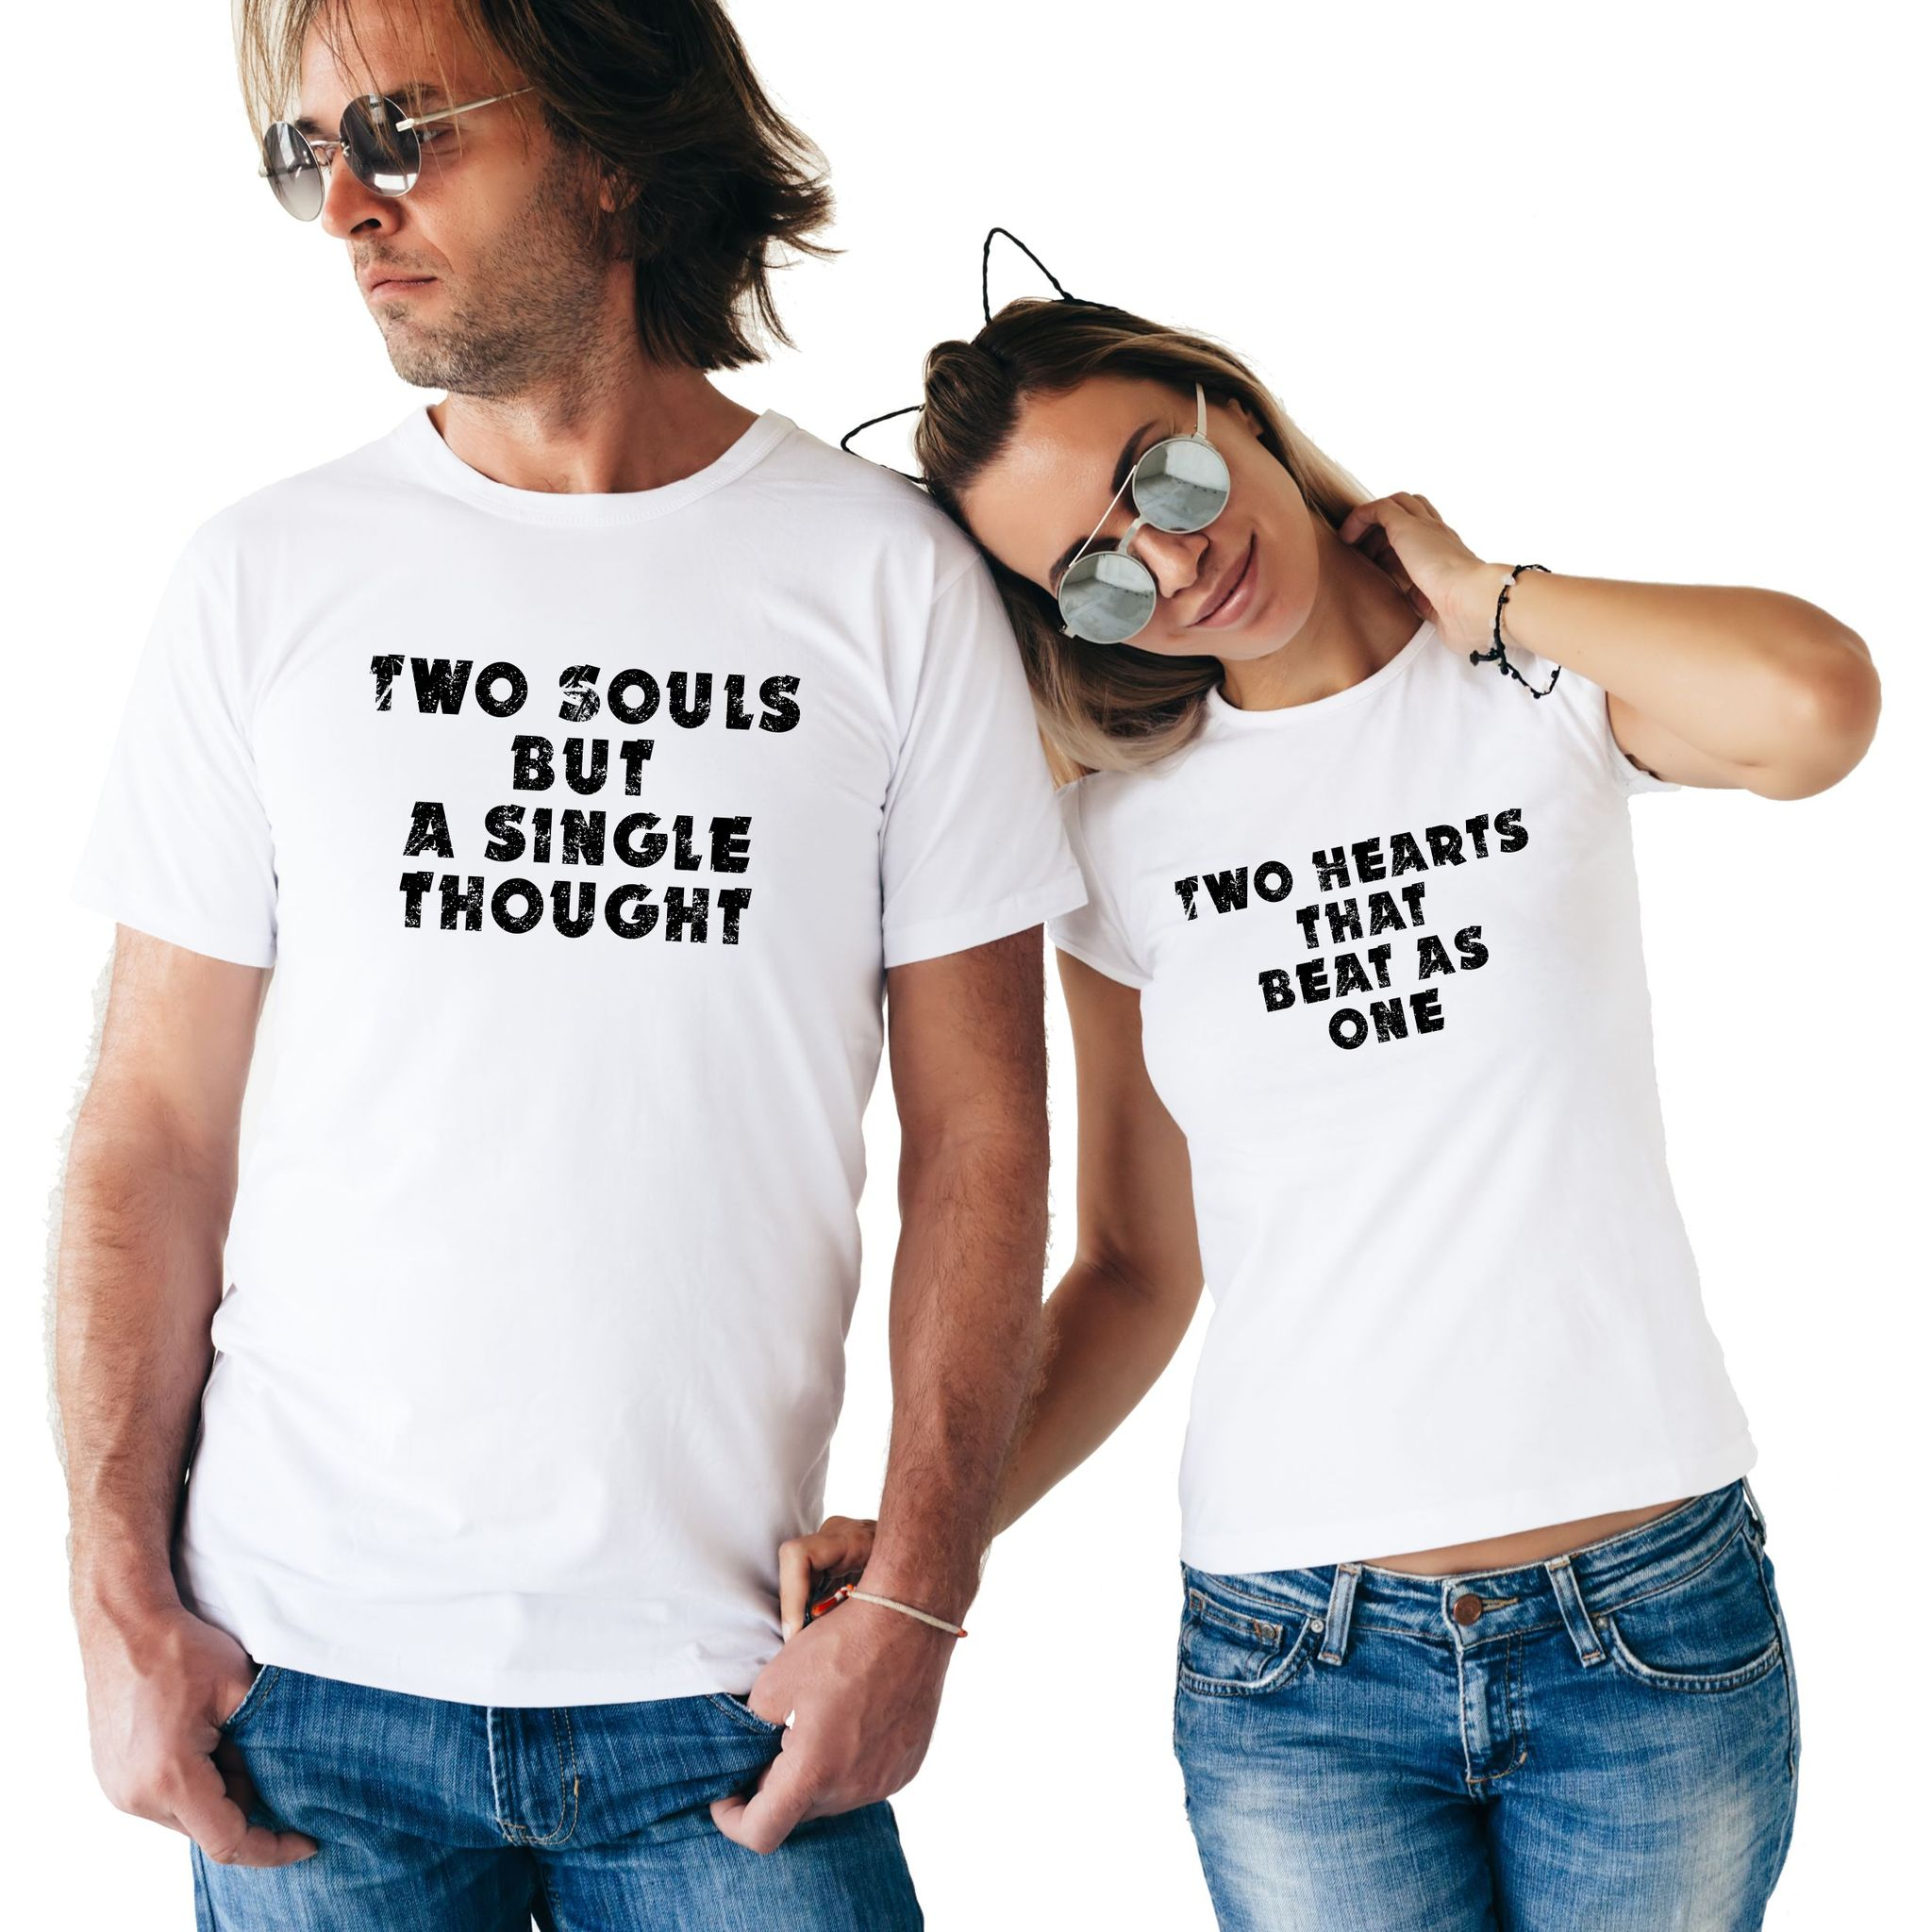 Two Souls But A Single Thought Two Hearts That Beat As One Slogan Letter Print T-shirt Funny Couple T Shirt For Lovers Gift